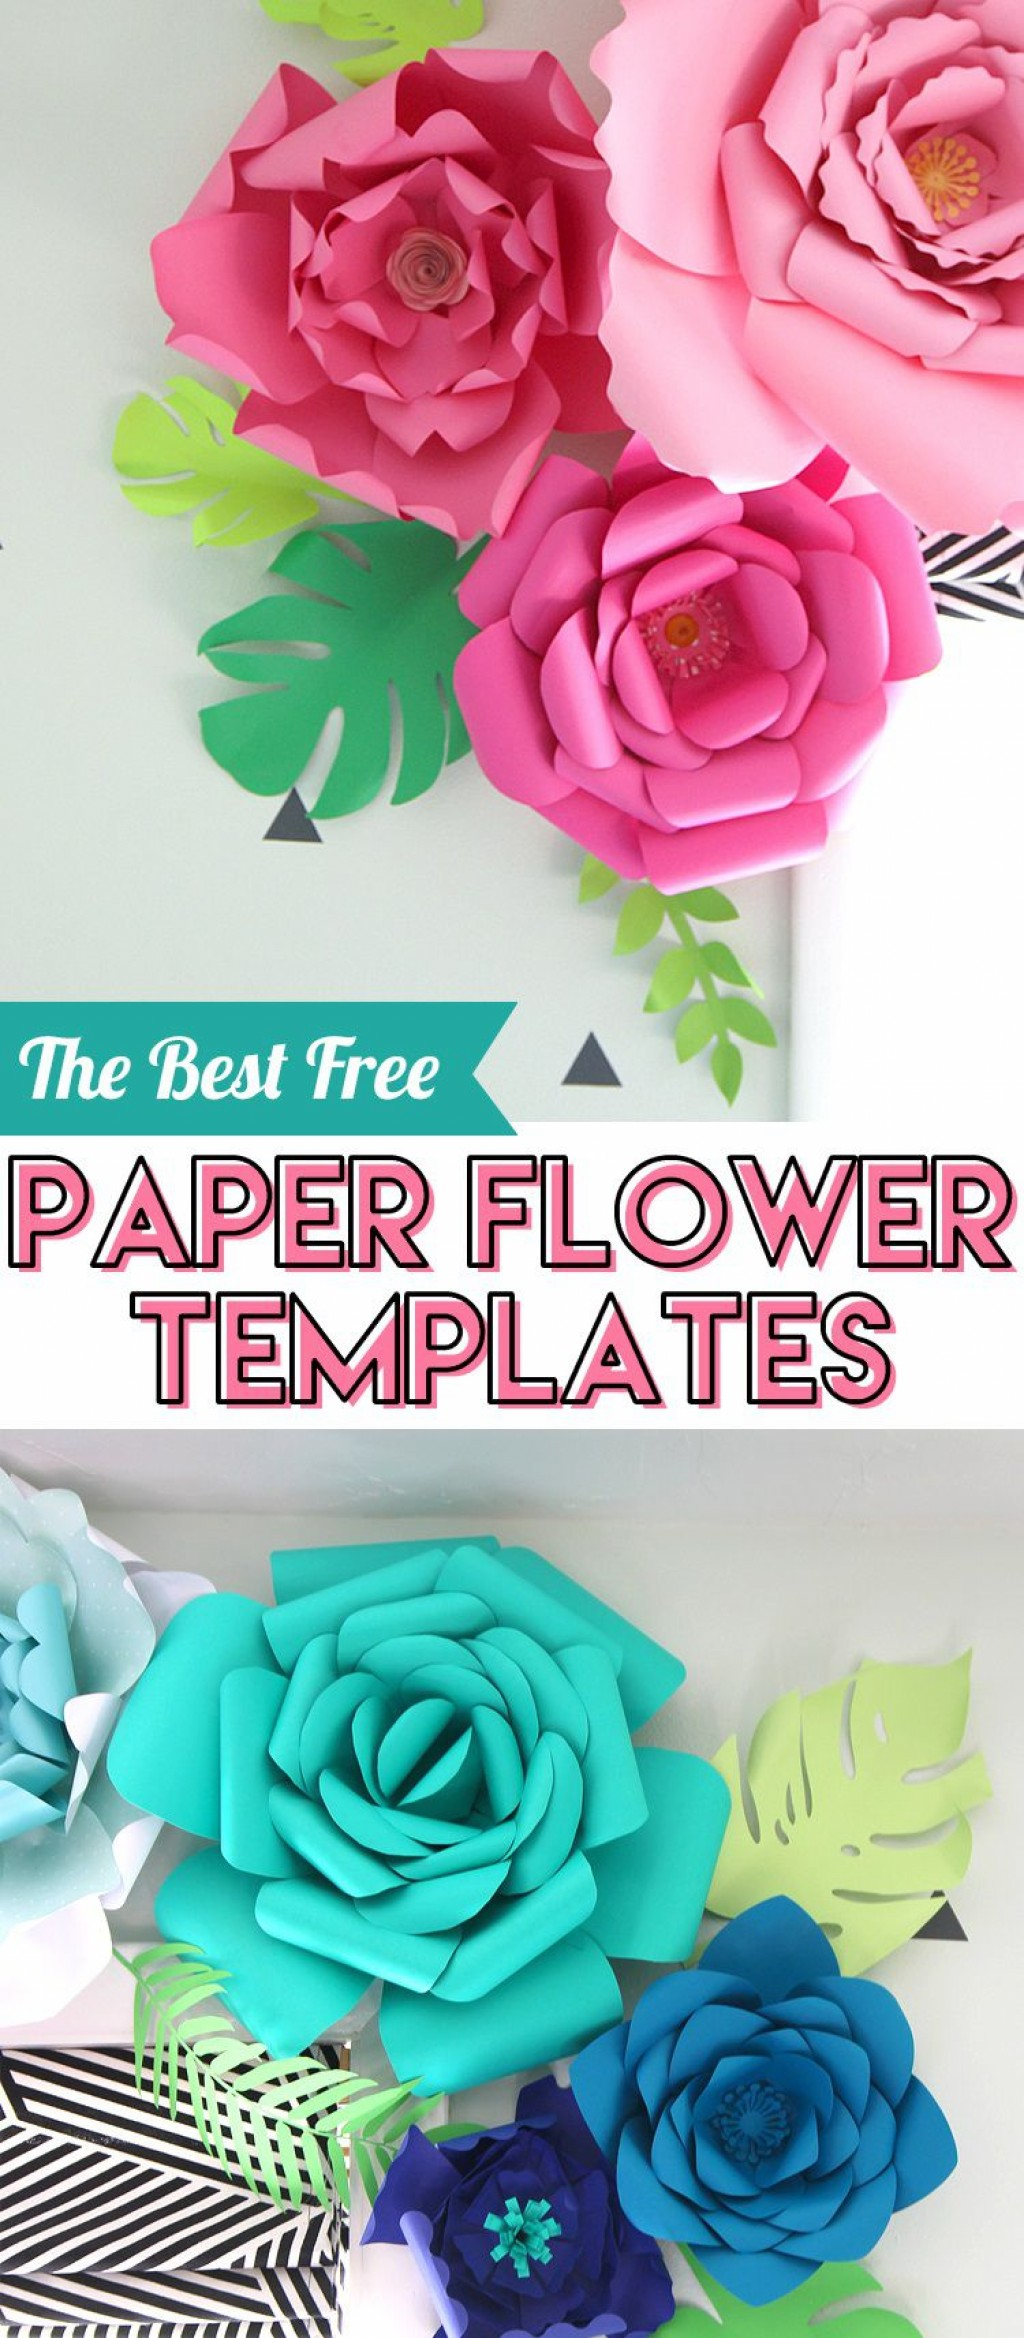 008 Remarkable Free Small Paper Flower Petal Template Photo  TemplatesLarge